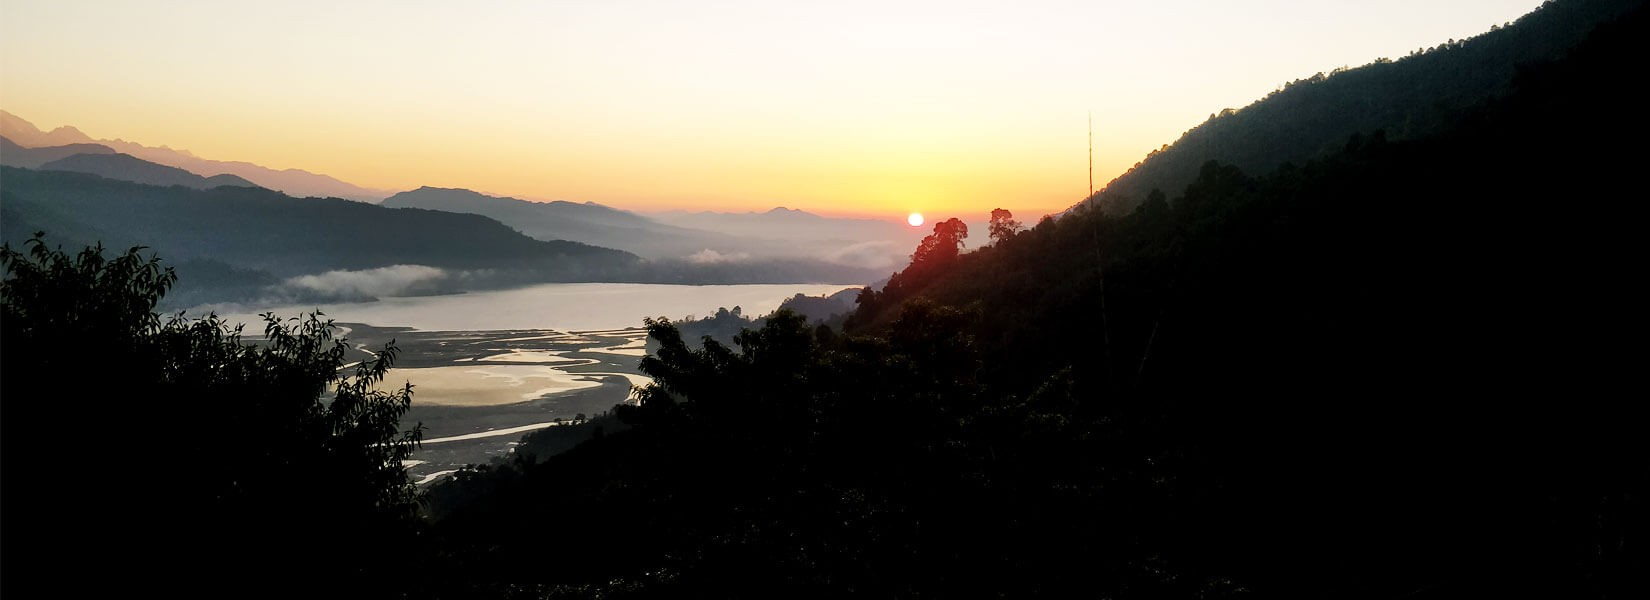 Sunrise Tour in Nepal